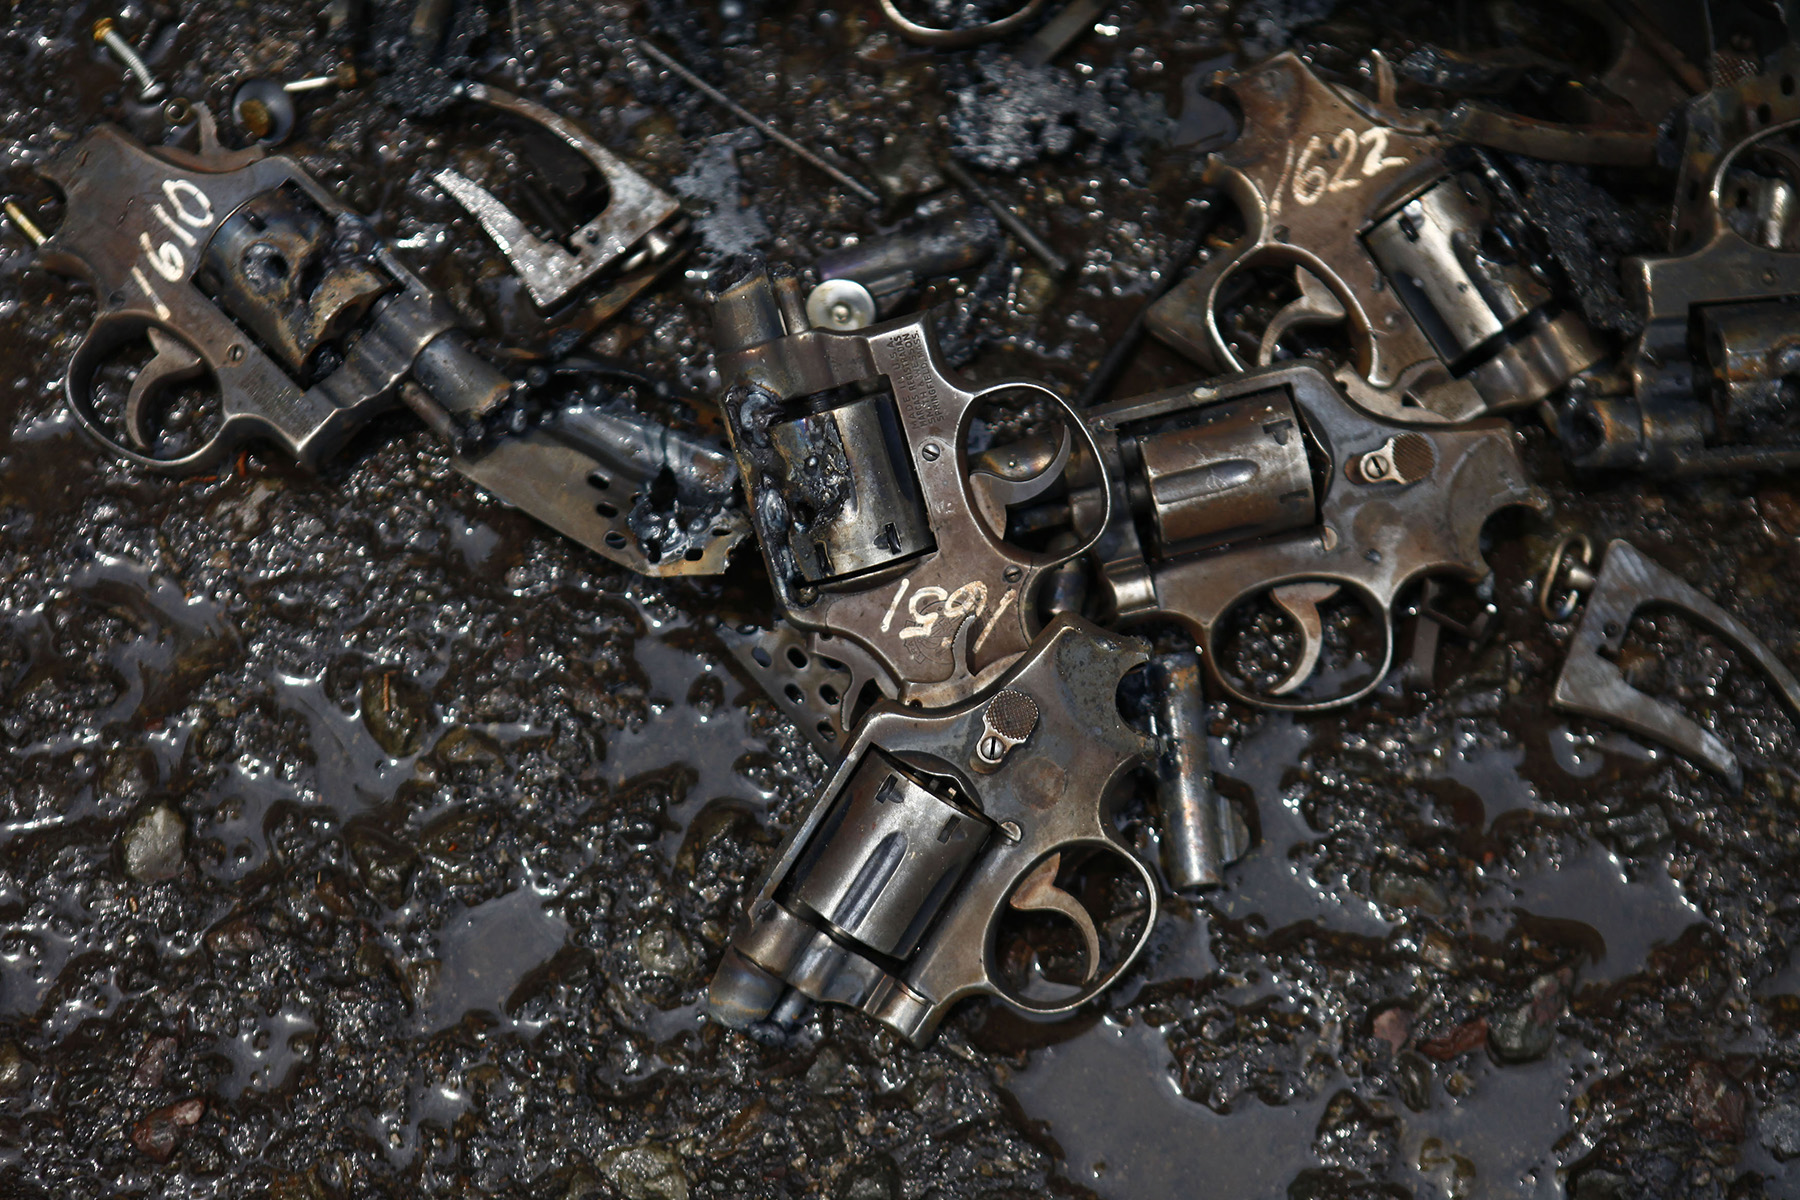 Parts of confiscated weapons by national security authorities are seen on a floor after they were destroyed at a military zone of Mexico City .